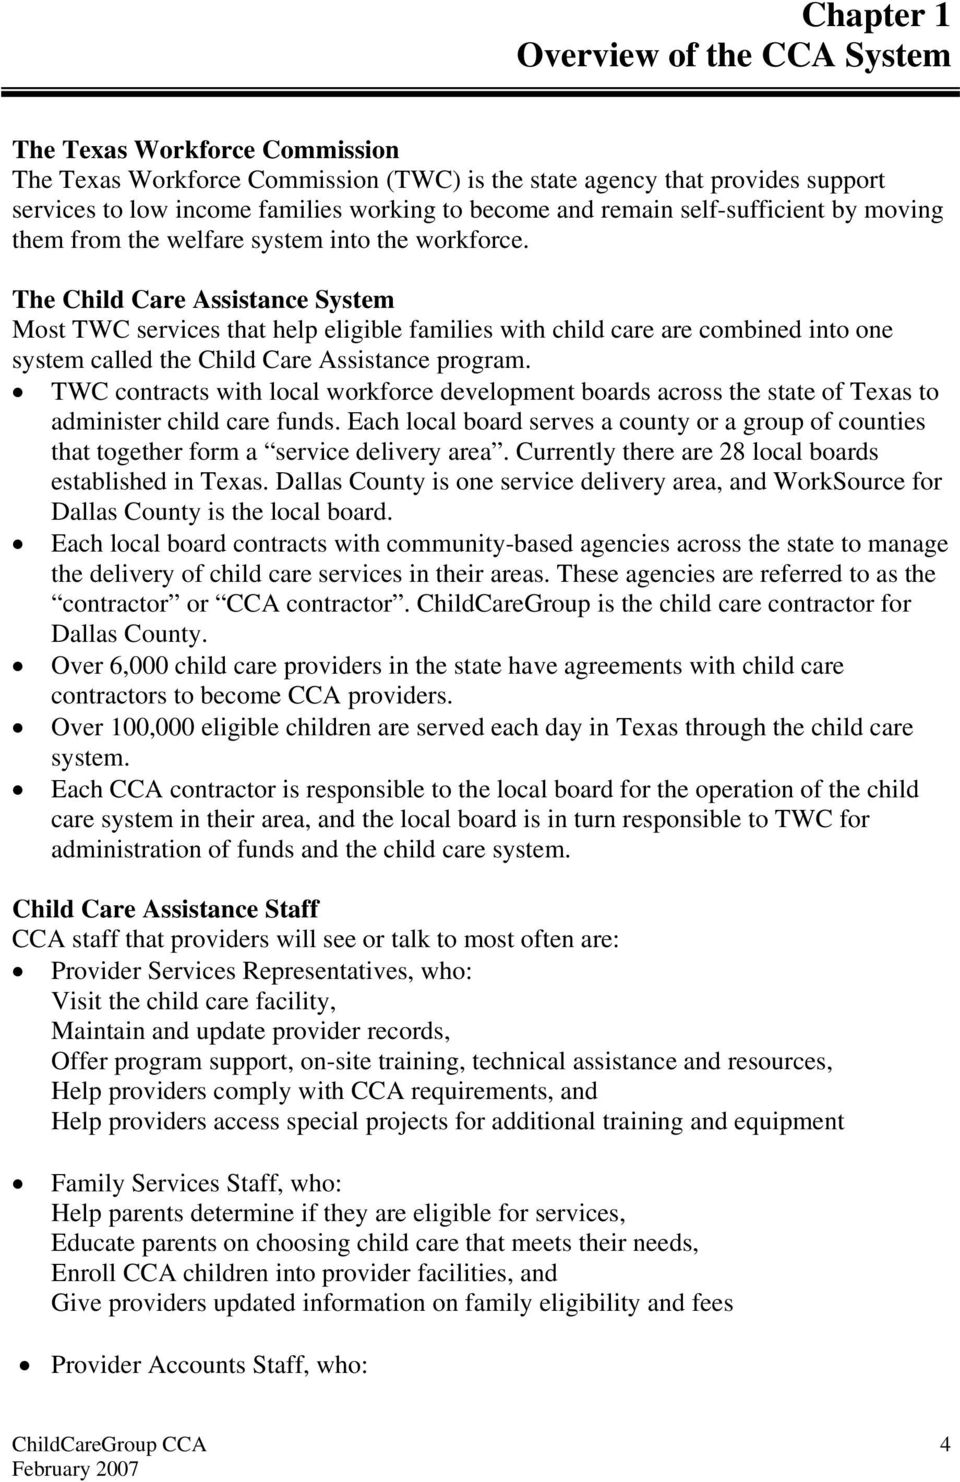 The Child Care Assistance System Most TWC services that help eligible families with child care are combined into one system called the Child Care Assistance program.